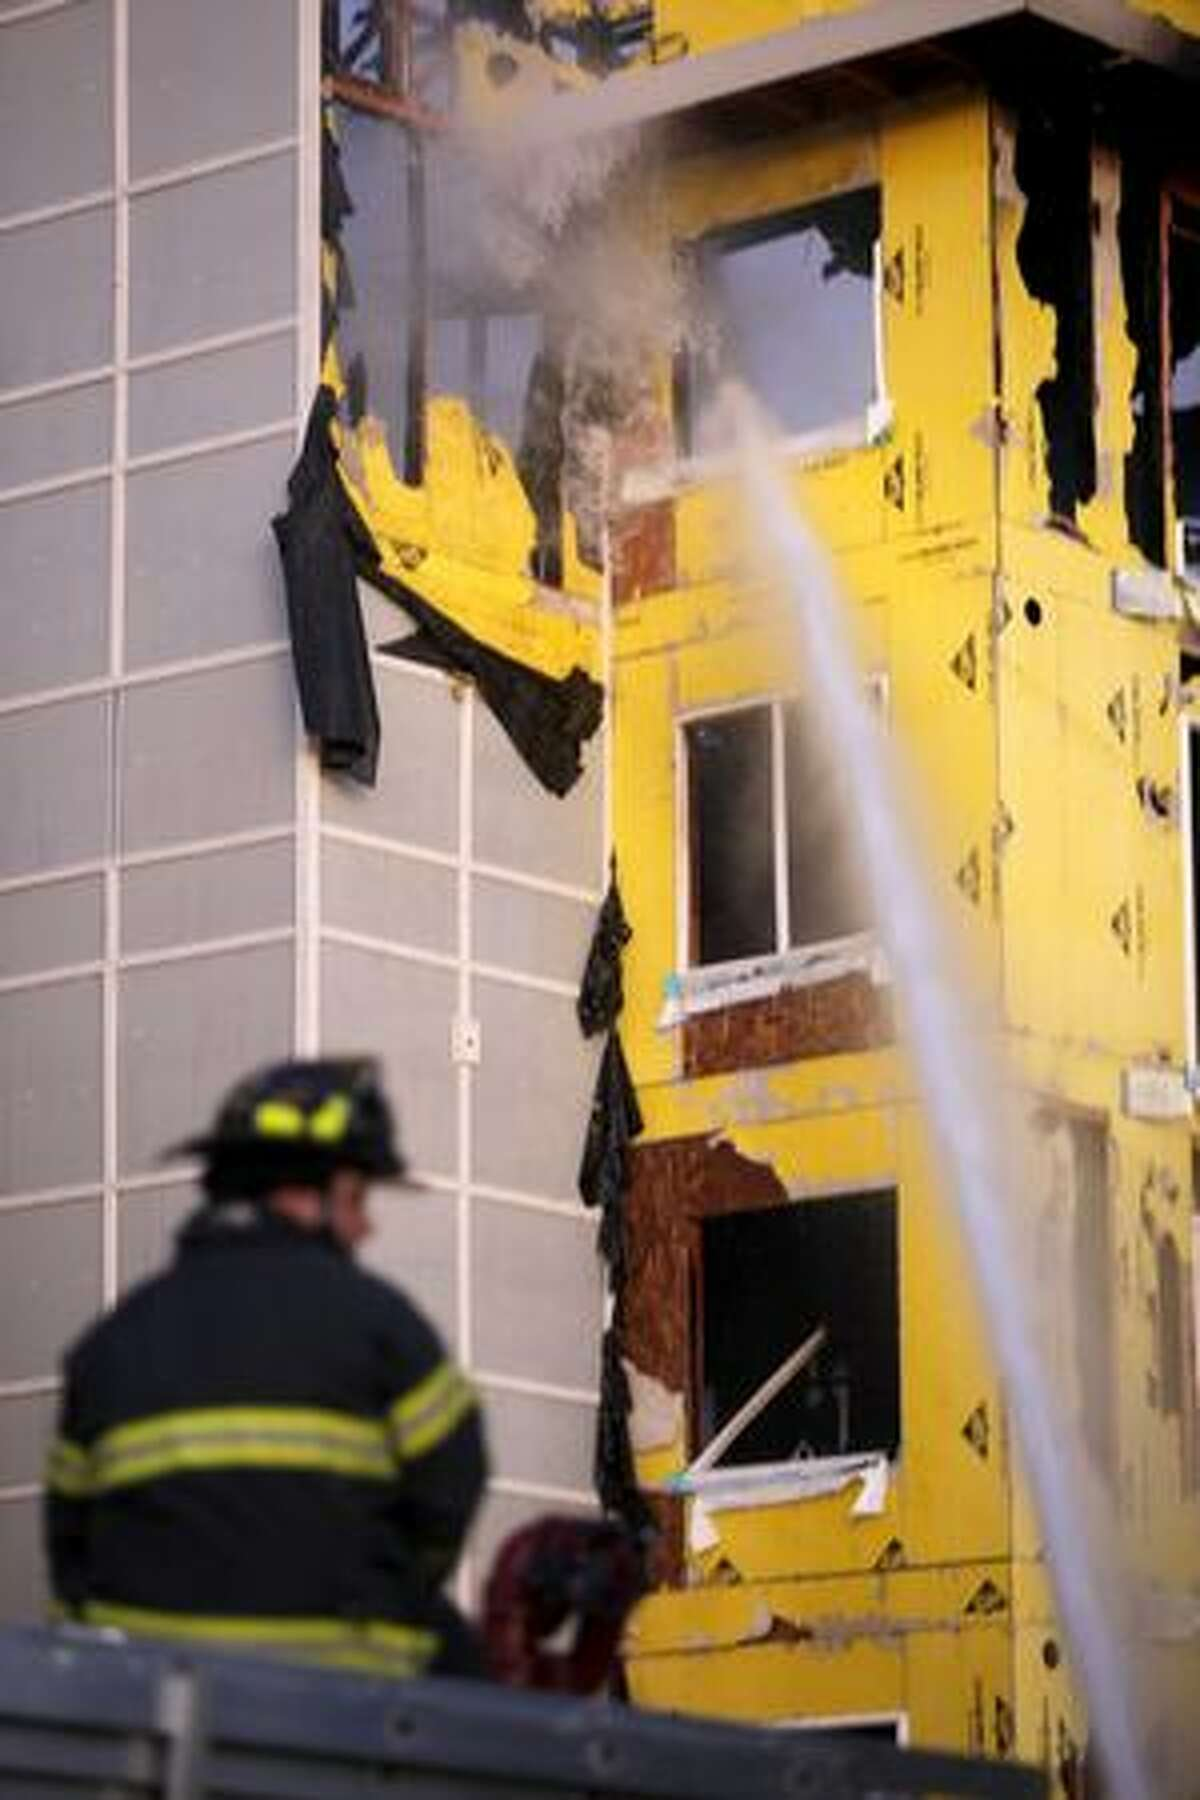 Firefighters spray water into a window during a four-alarm fire at a Renton Highlands apartment complex Tuesday evening.